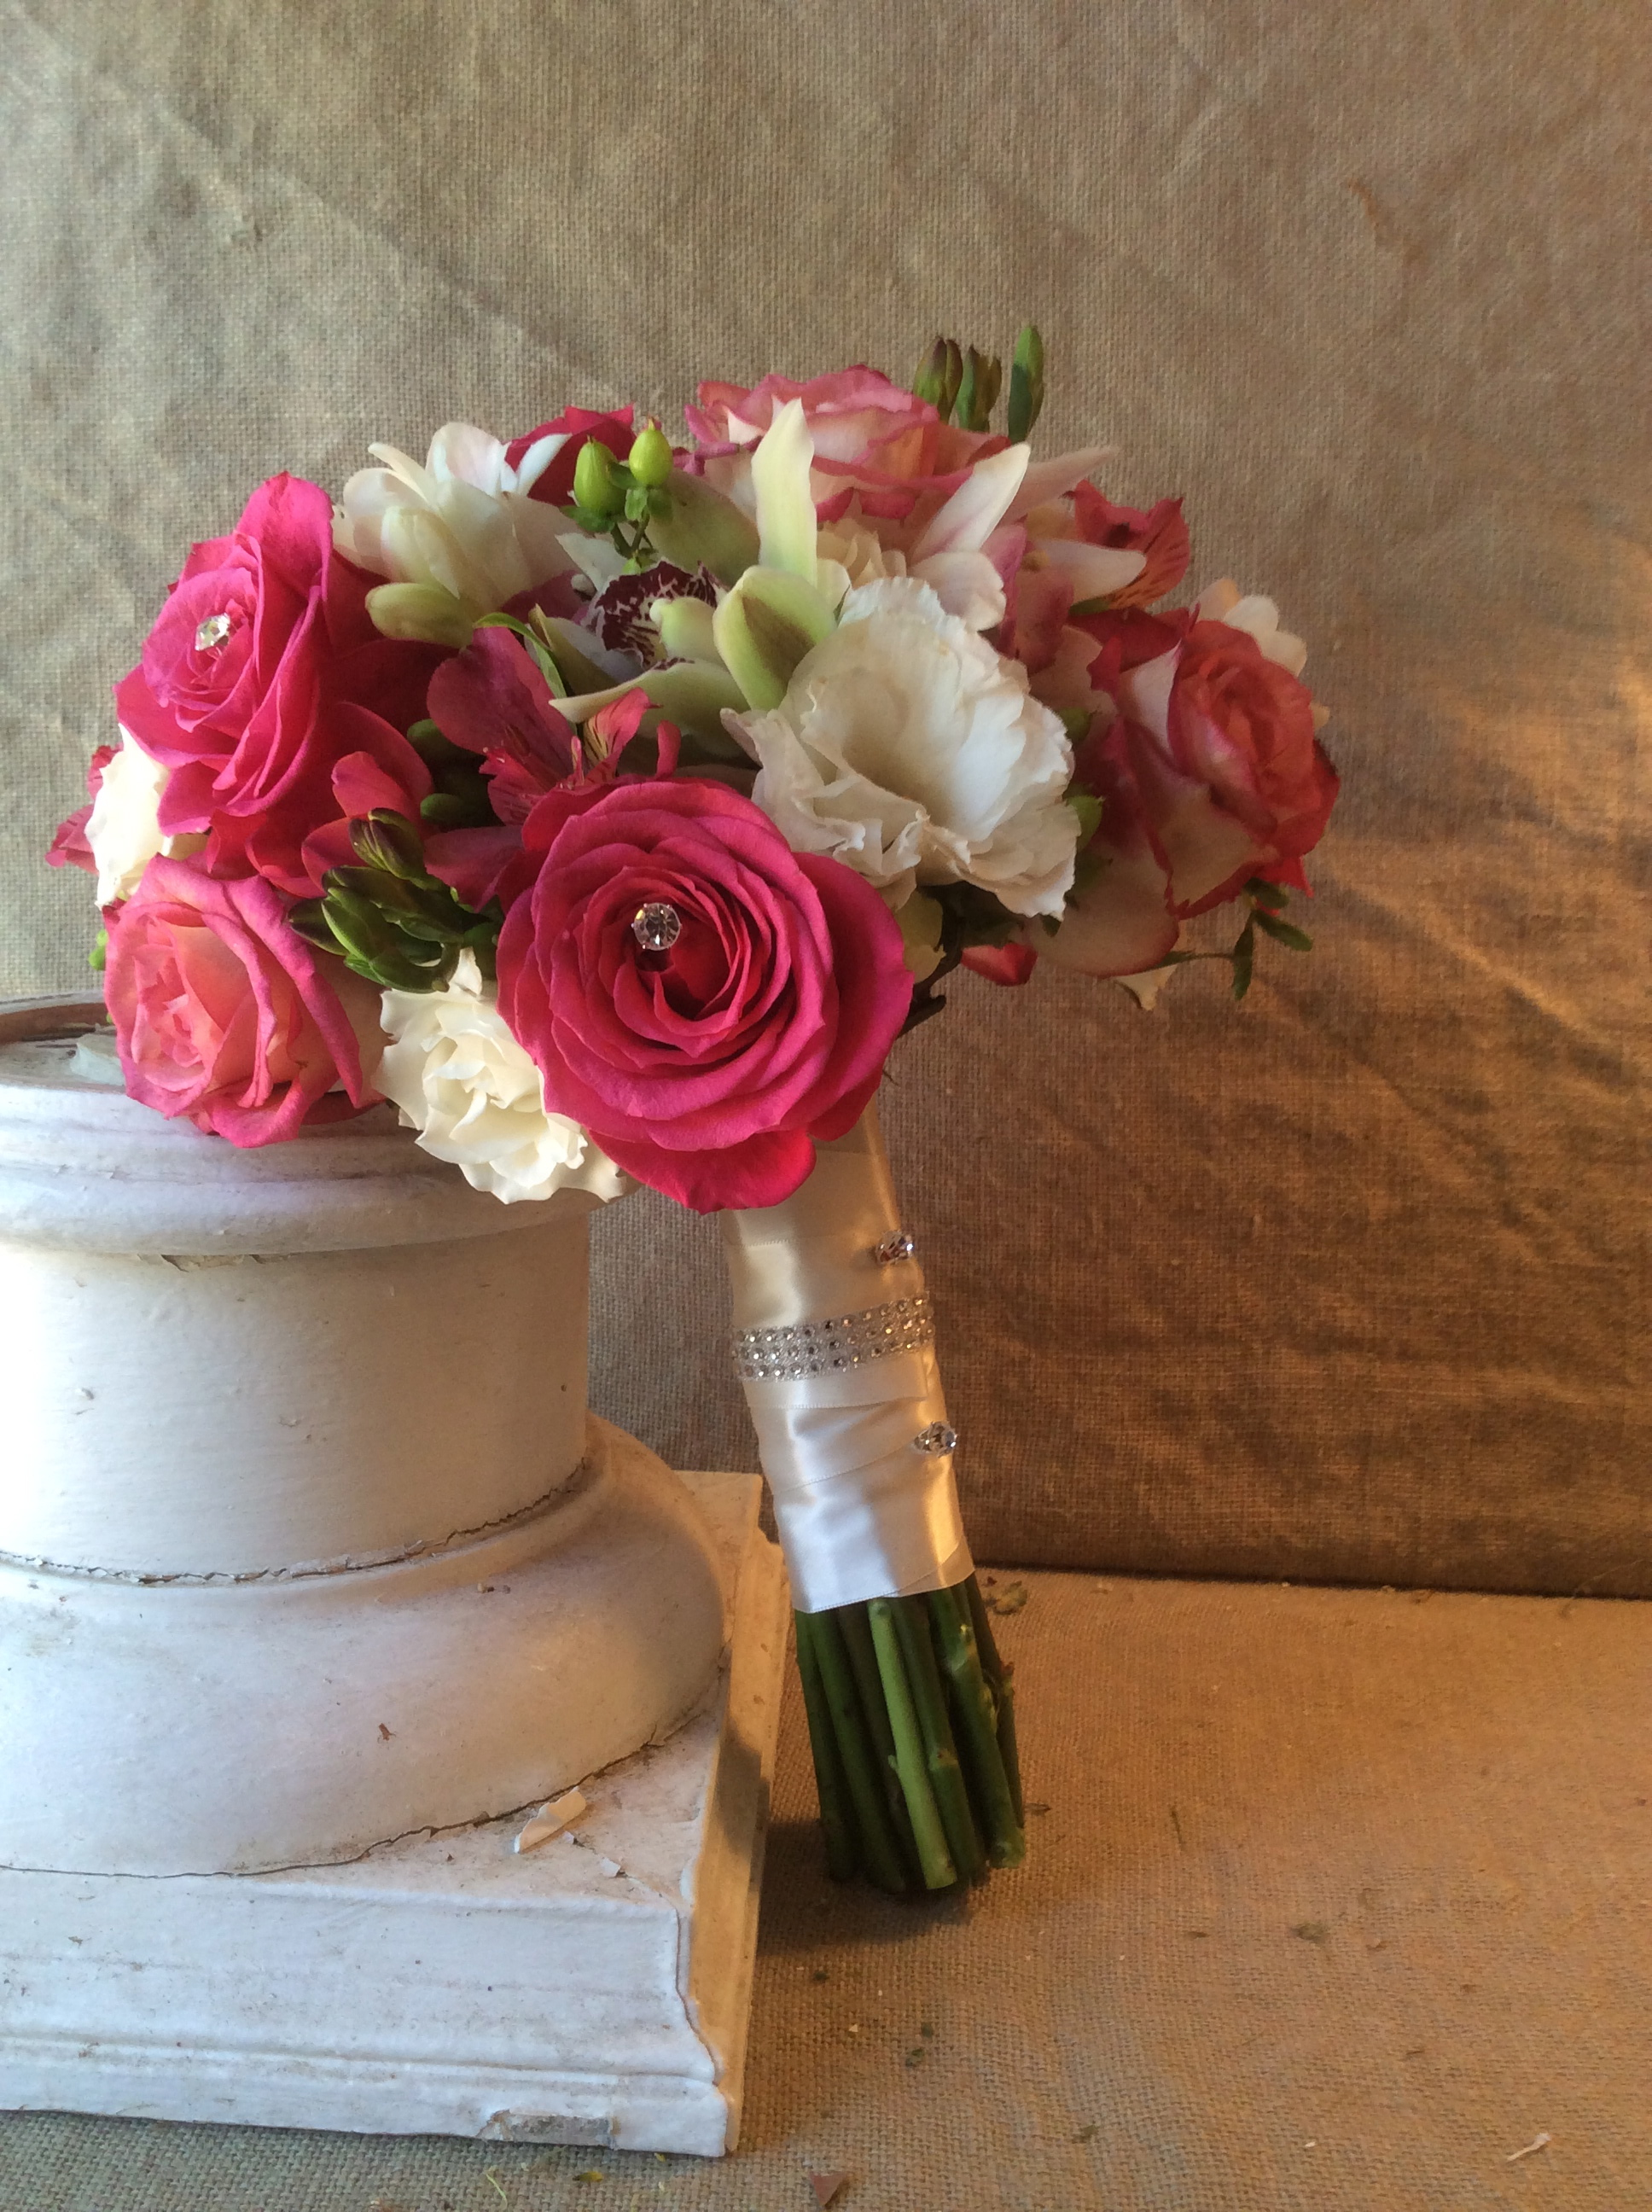 Roses, orchids and freesia get a little glam with the addition of rhinestones and a bejeweled wrap.